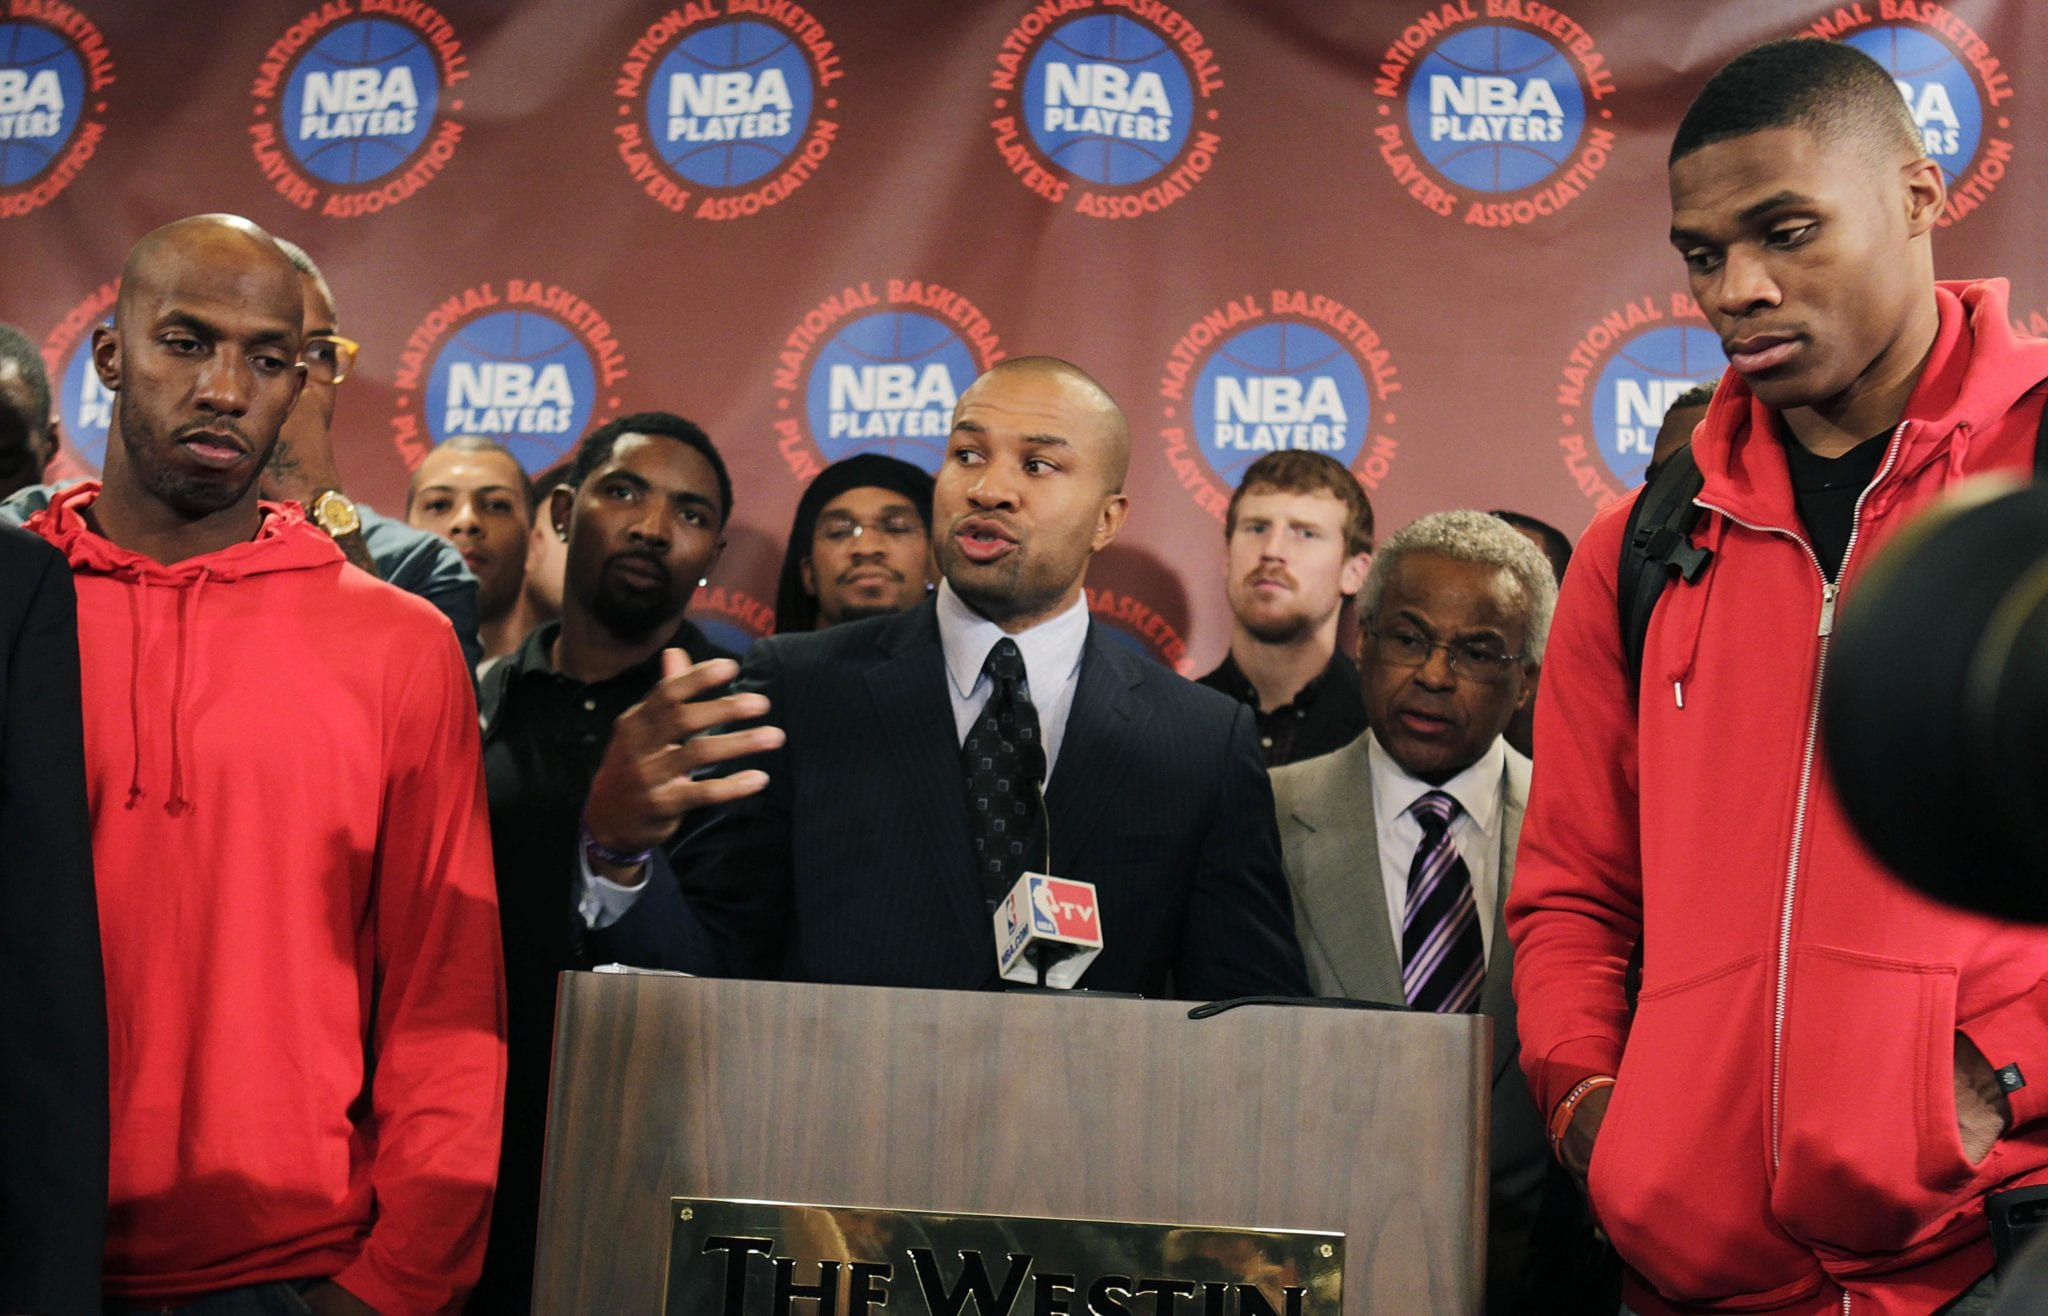 Flashback: Key Moments in the 2011 NBA Lockout